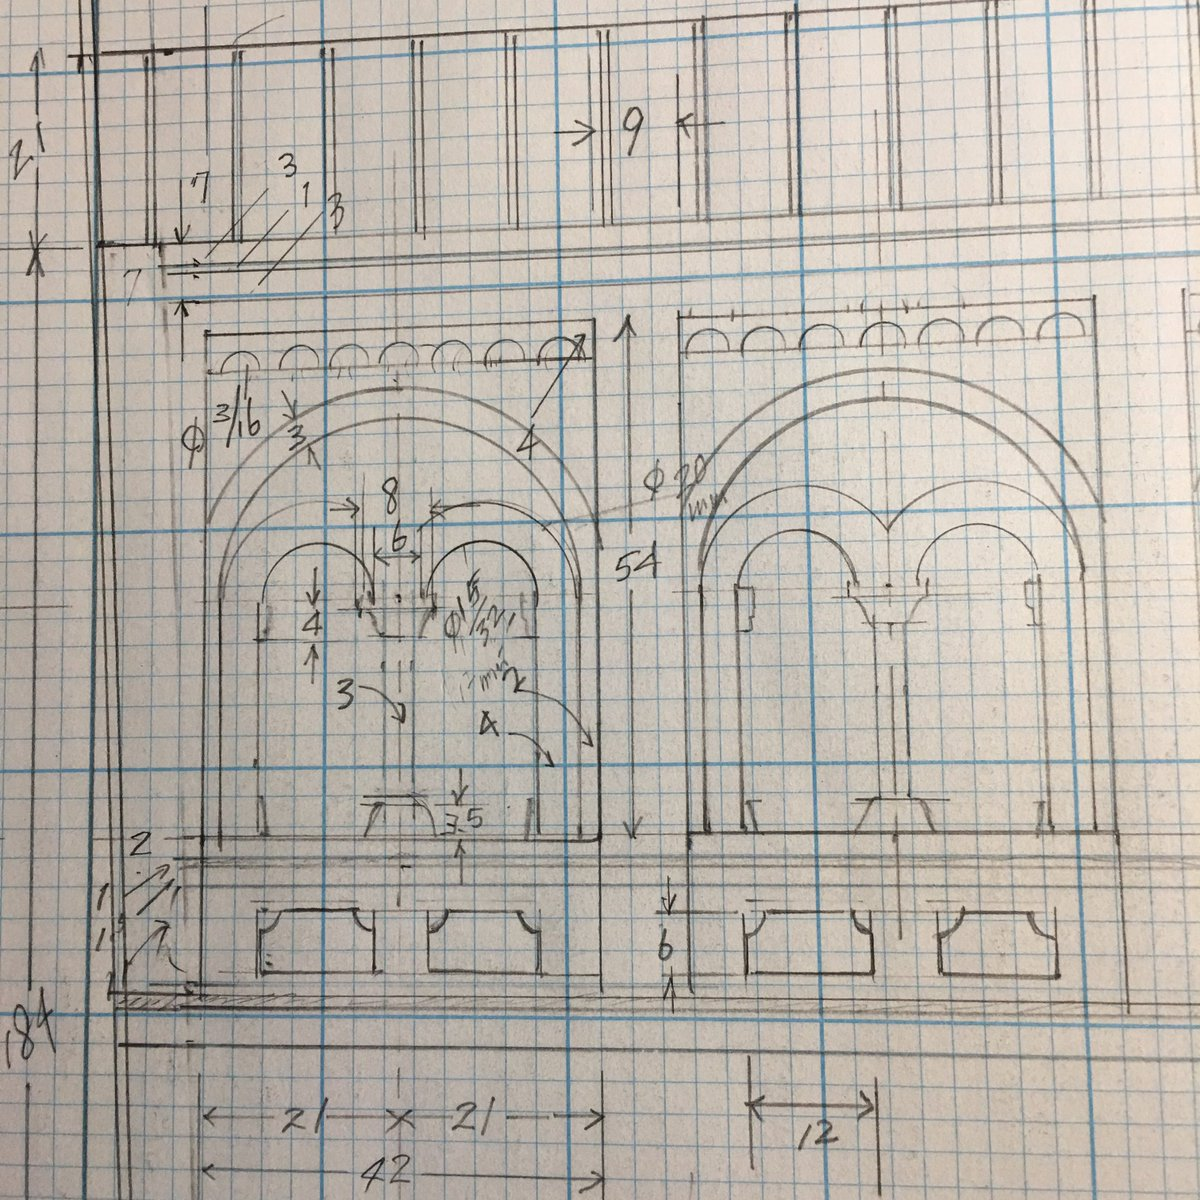 Kim mizutani on twitter from photosmade corridor blueprint kim mizutani on twitter from photosmade corridor blueprint neuschwansteine castle gatehouse for my paper crafts after 20 yrs almost there malvernweather Image collections